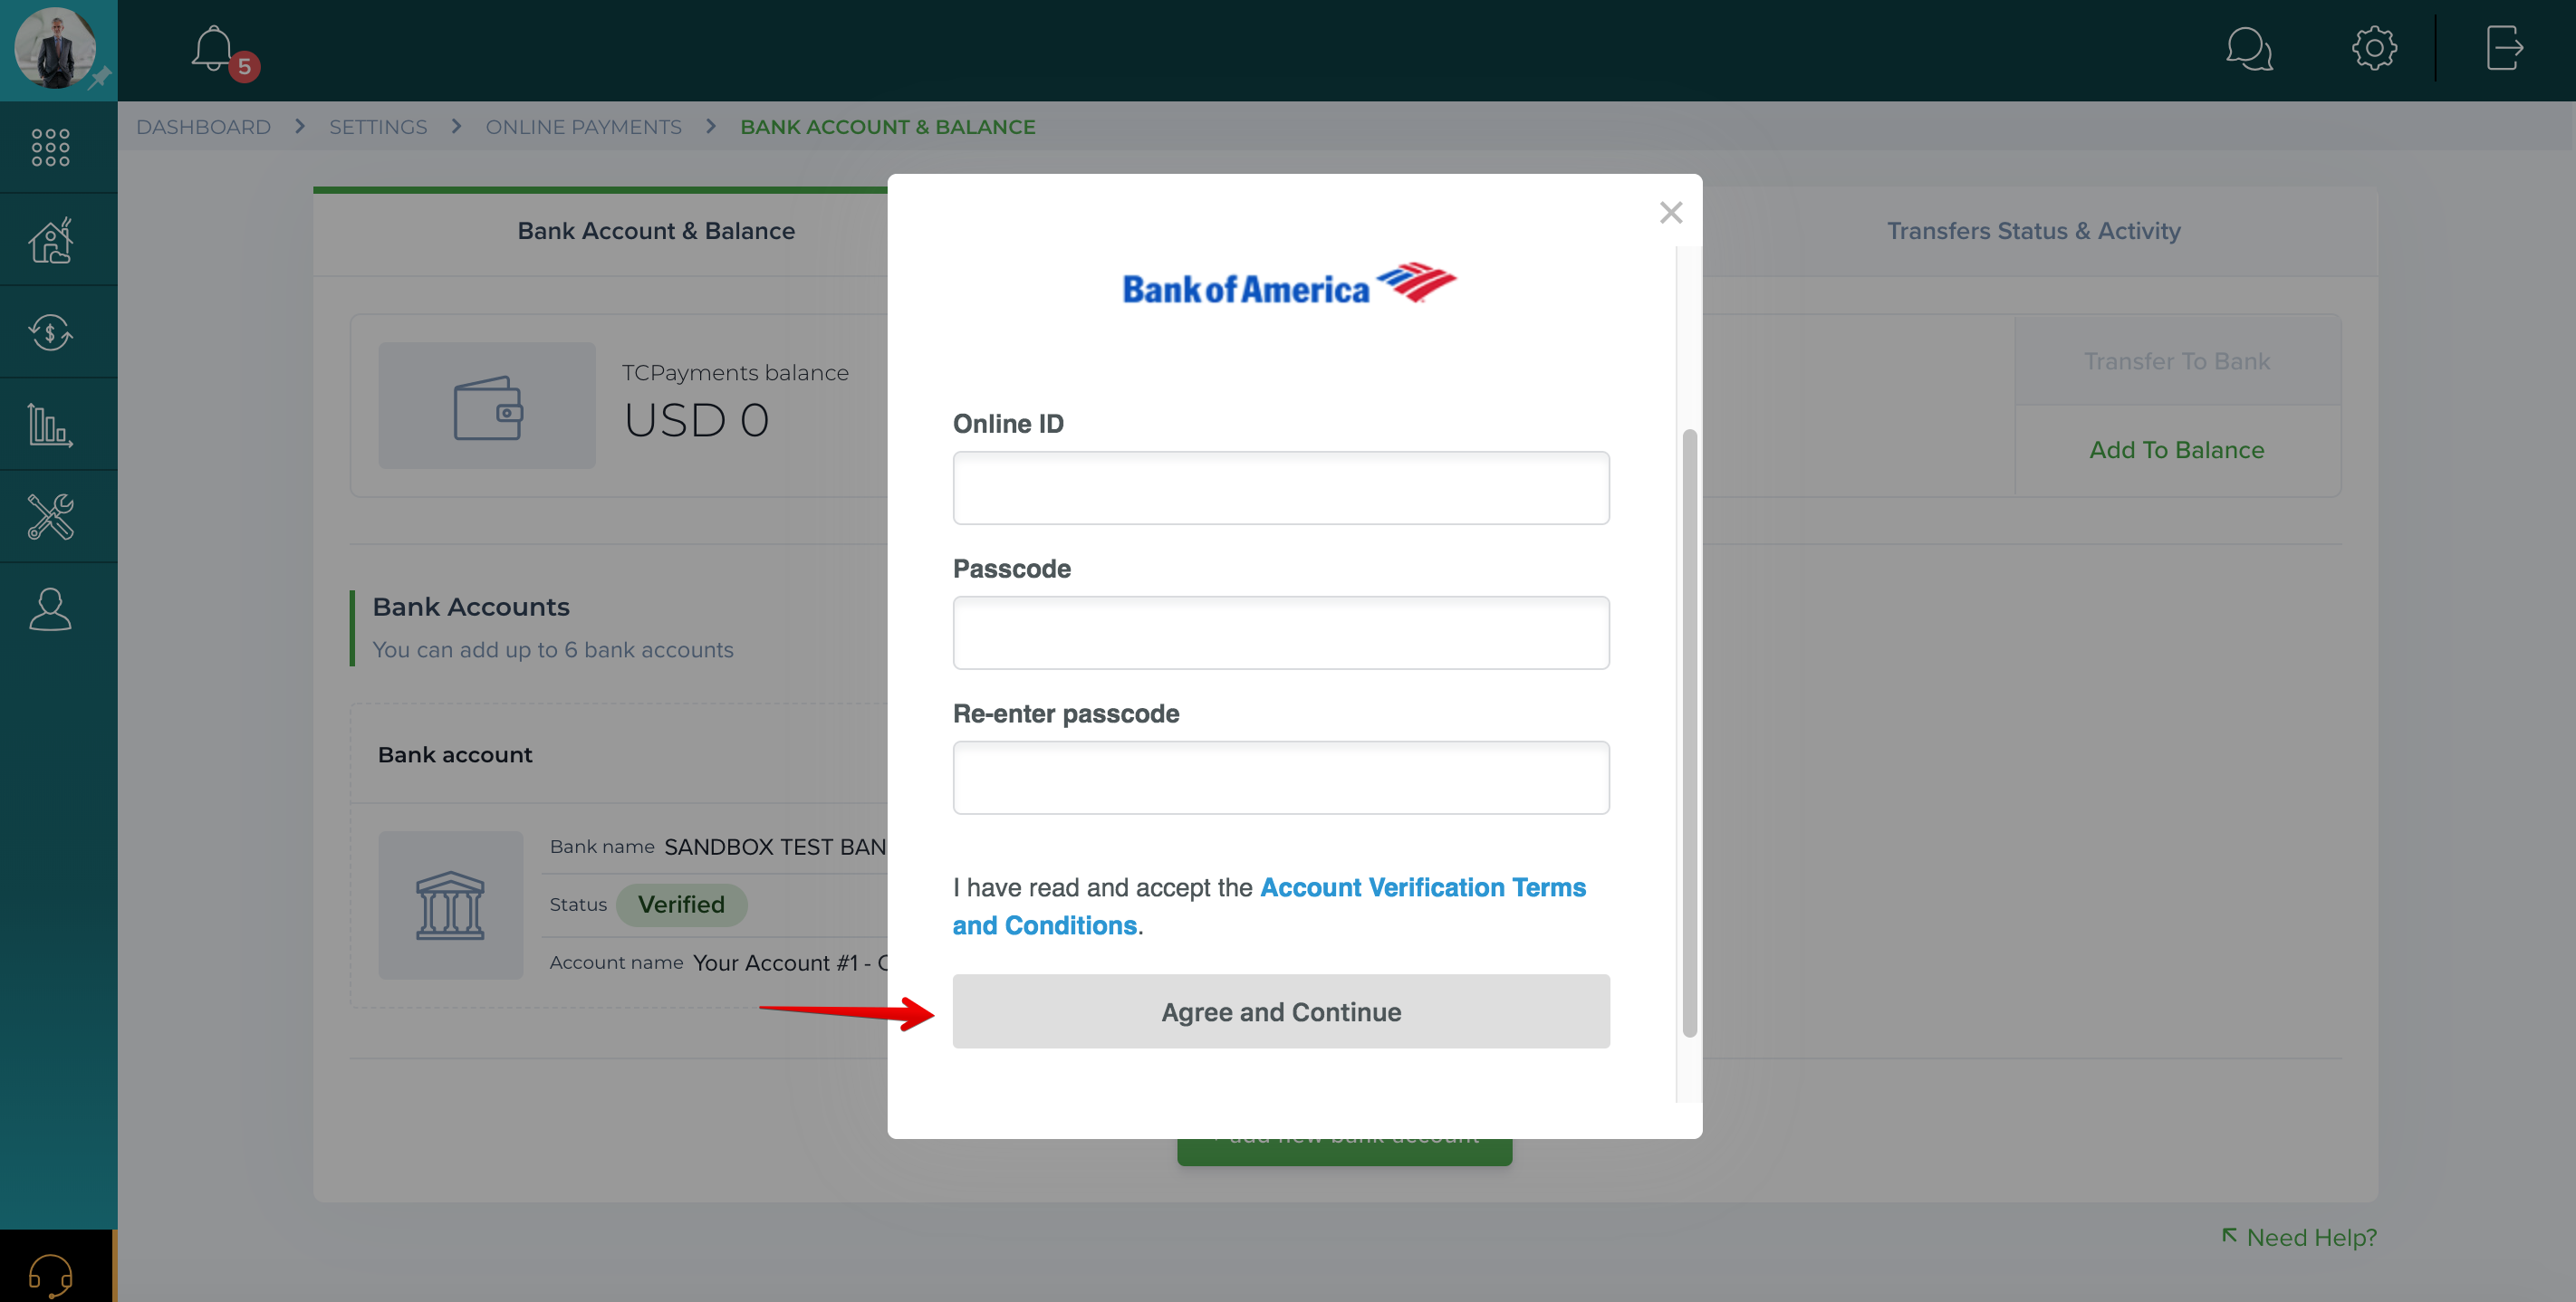 How do I add a bank account?